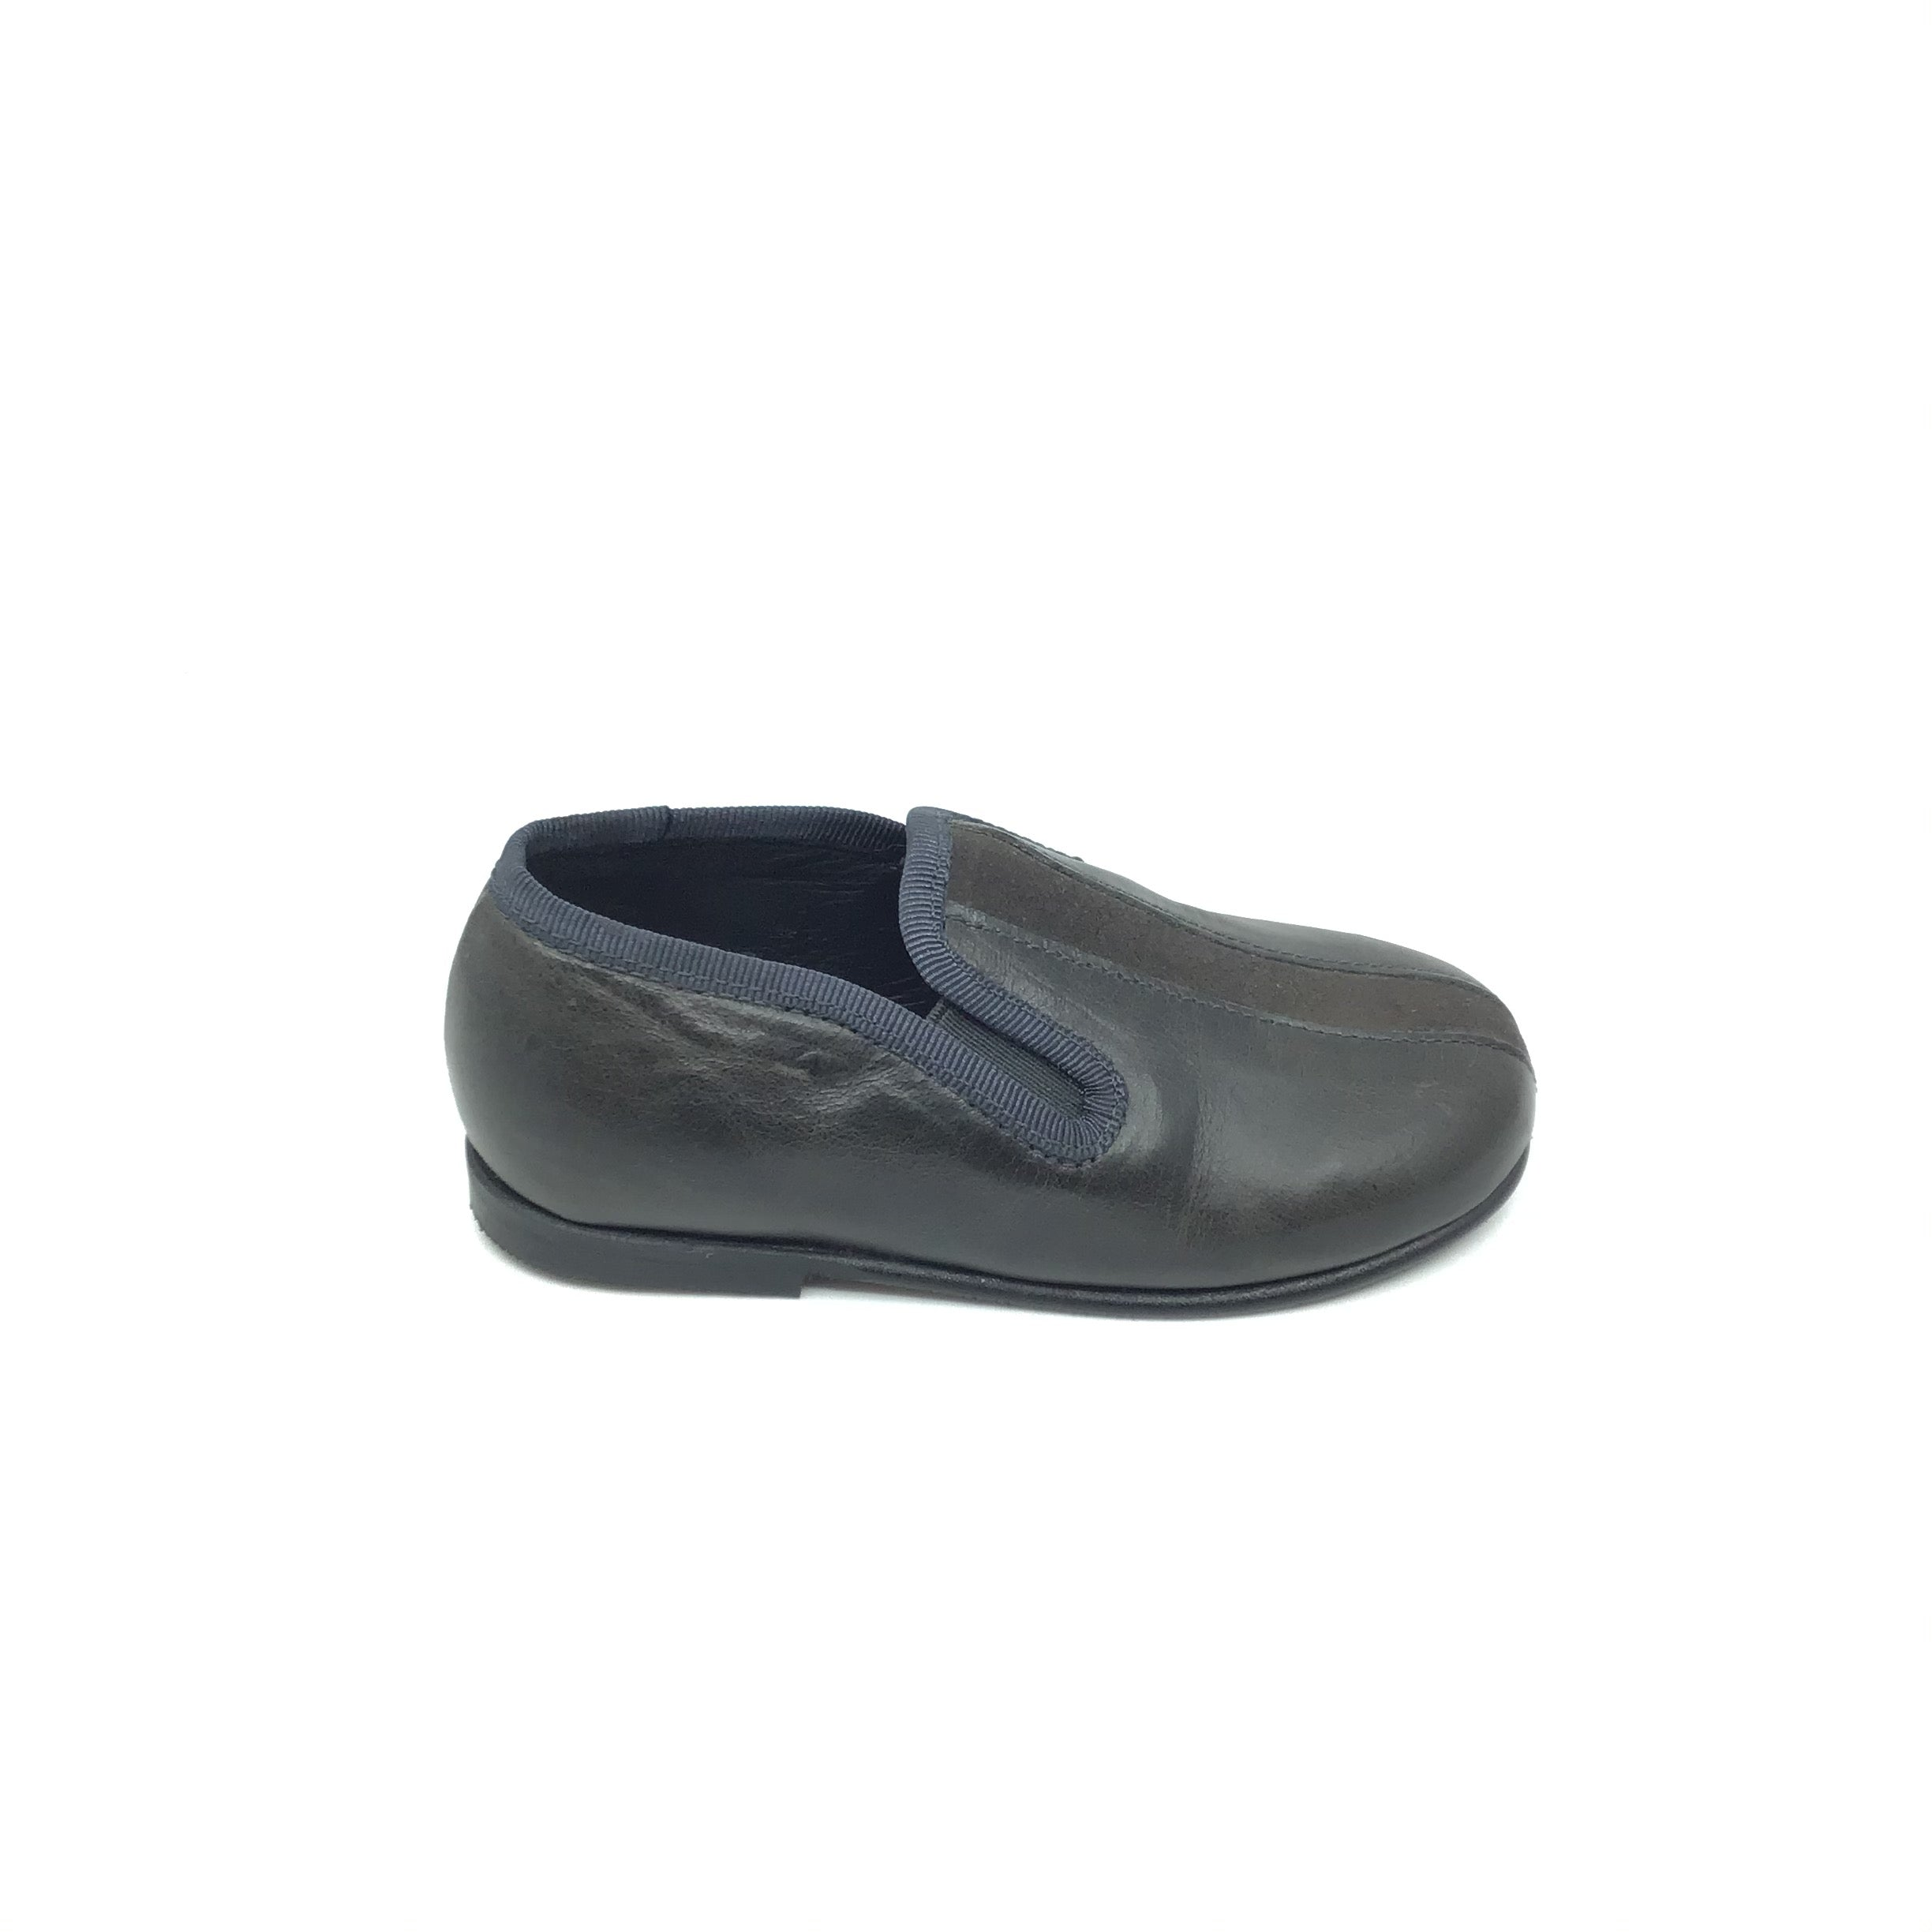 Luccini Gray Slip On with Gray Suede Center